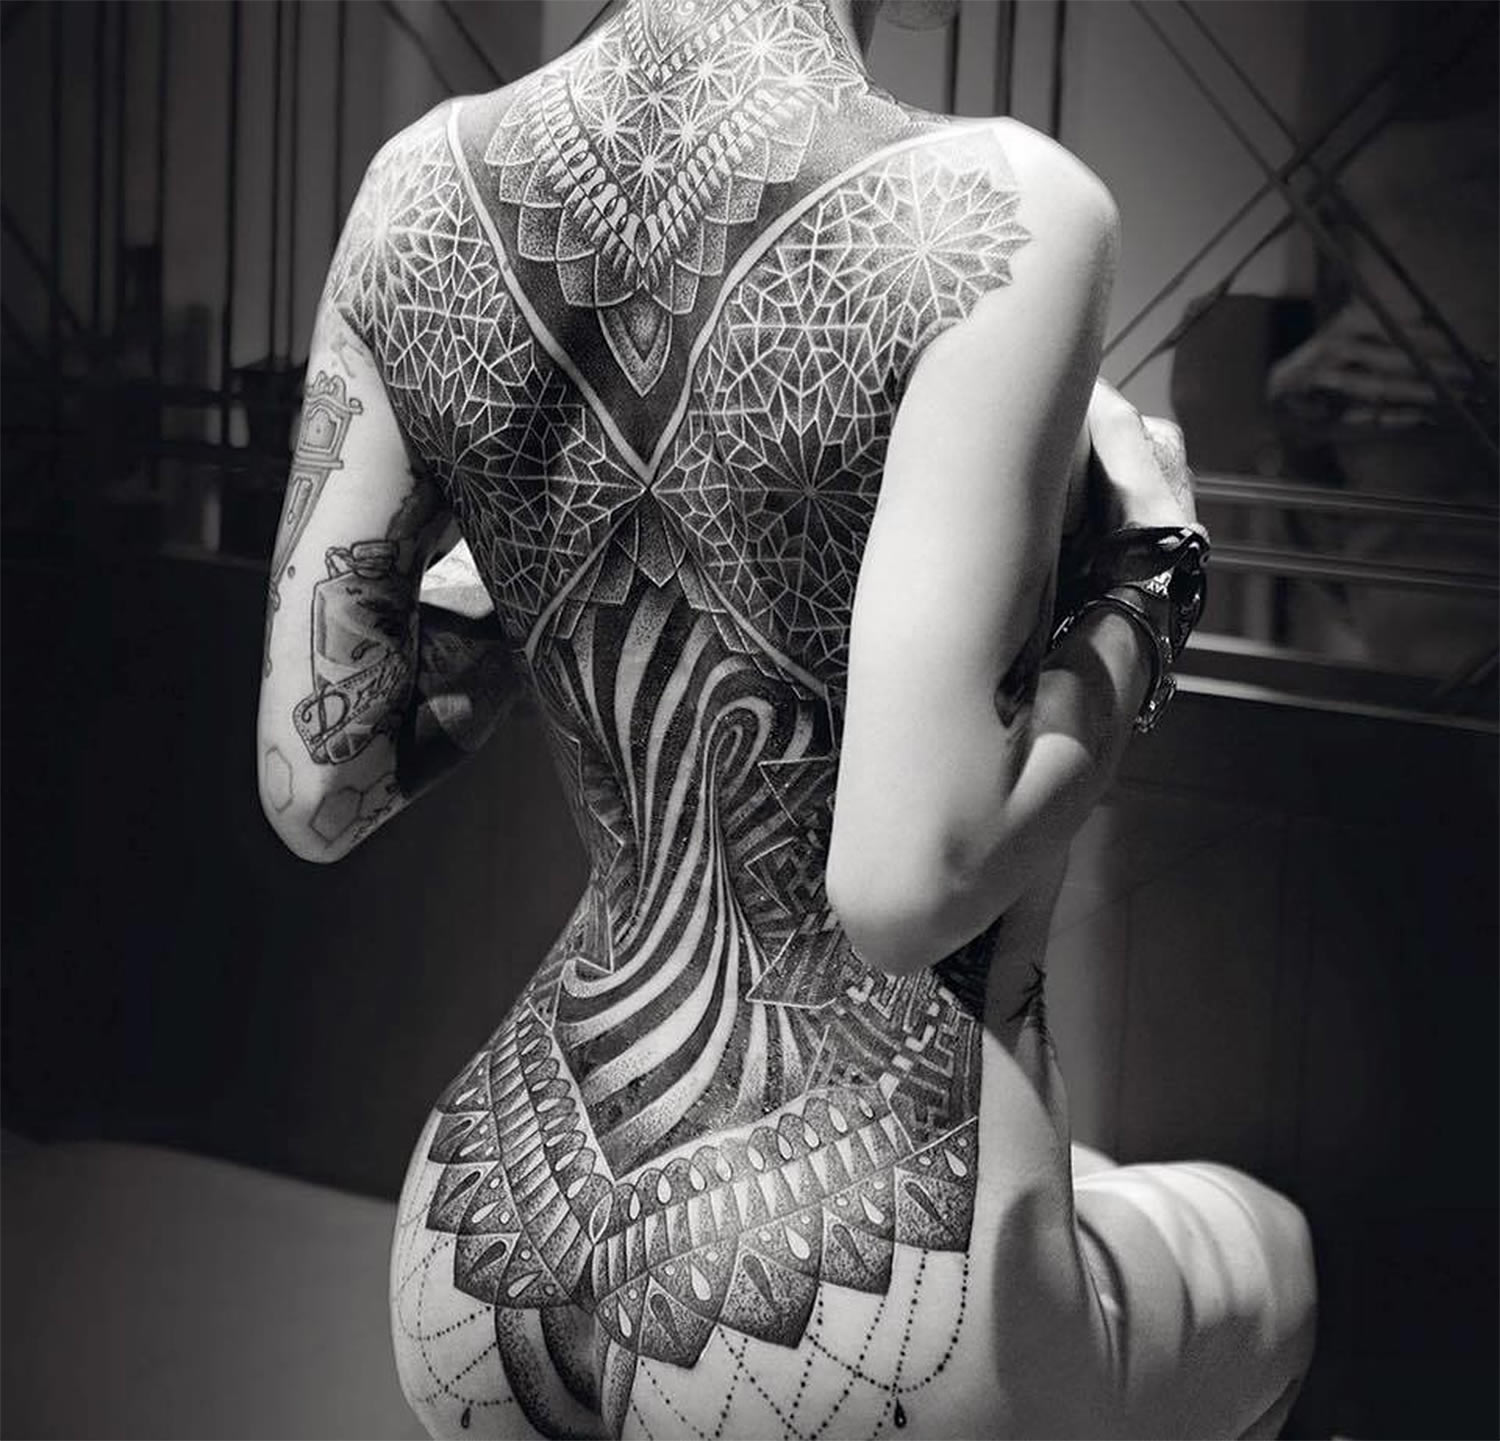 elaborate back tattoo by Glenn W Cuzen